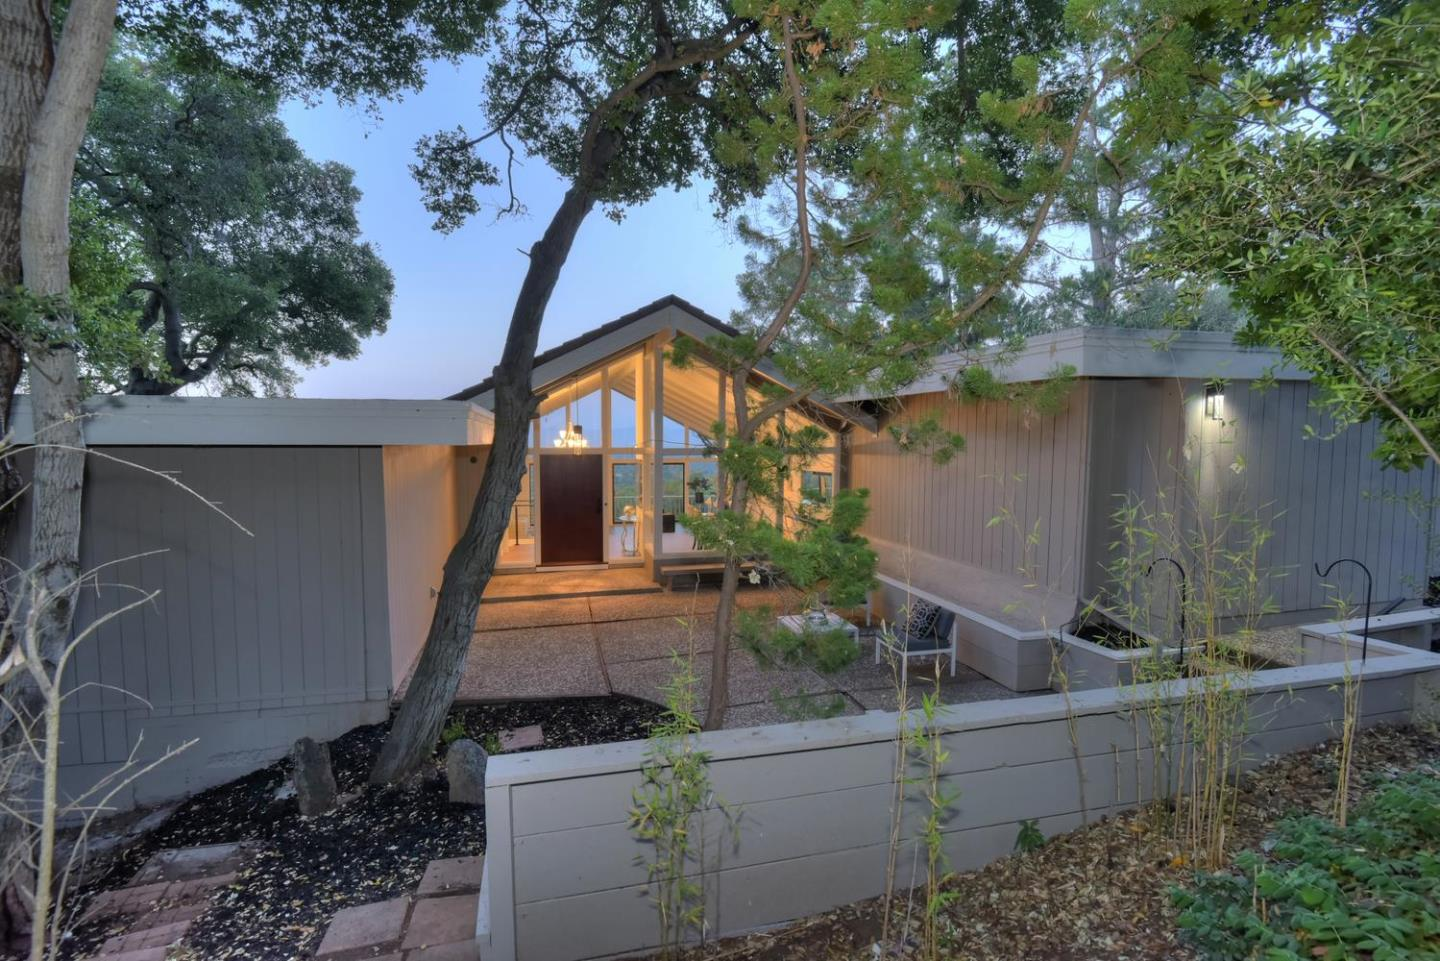 Single Family Home for Rent at 24745 Olive Tree Lane Los Altos Hills, California 94024 United States